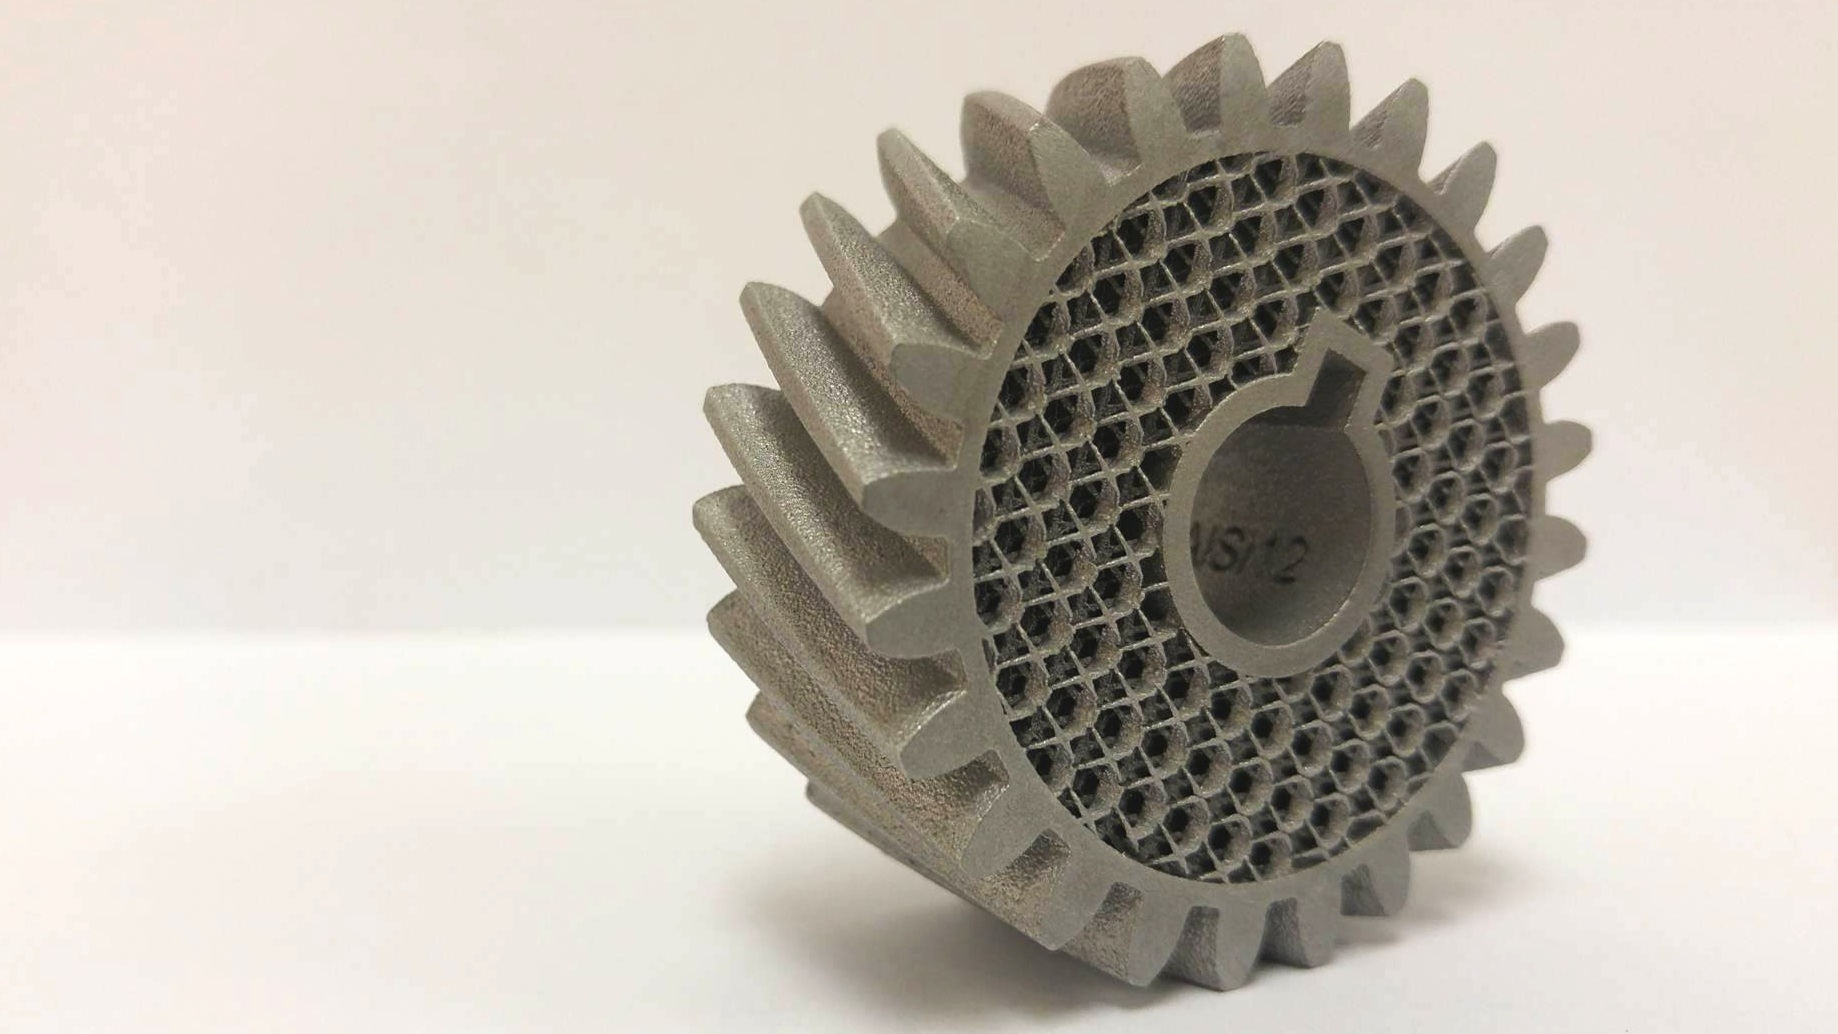 Latticed 3d printed metal gear manufactured with DMLS.